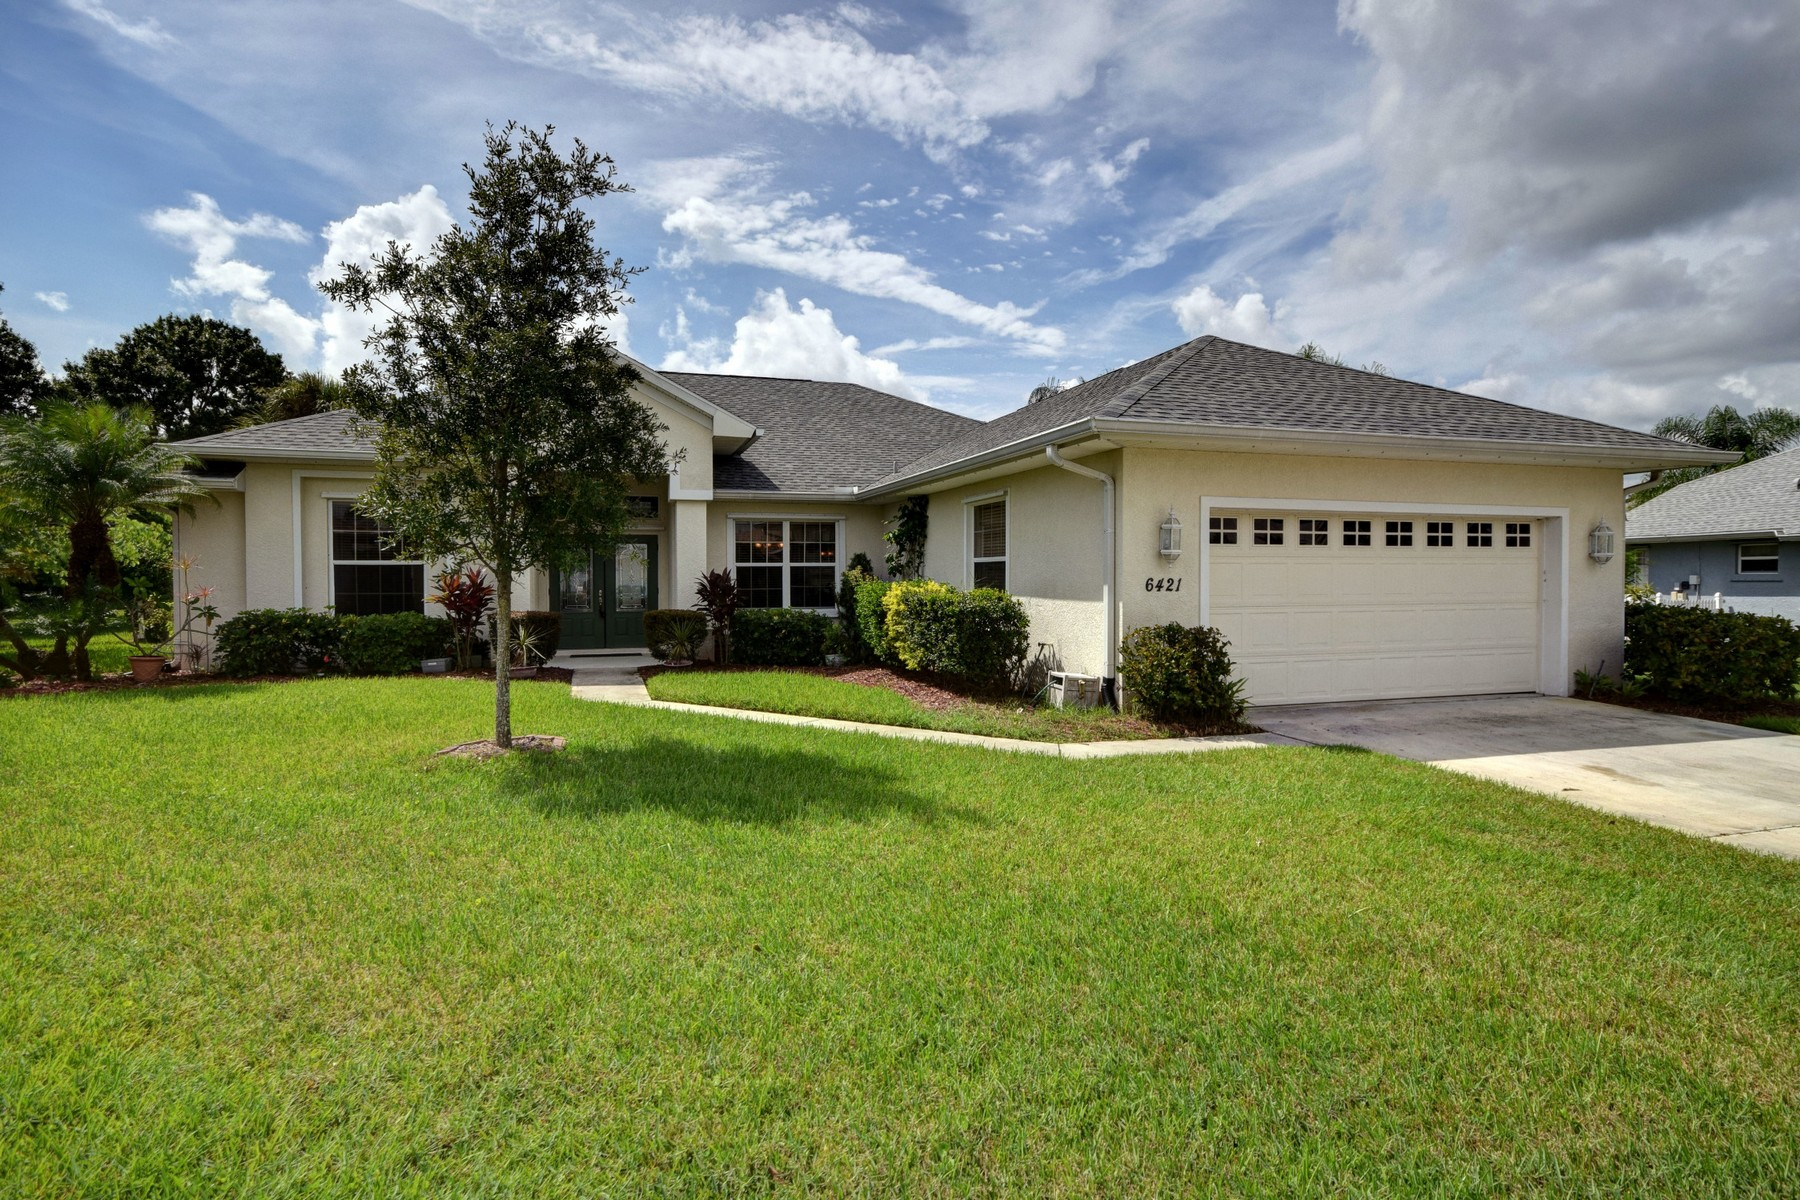 Property For Sale at Spacious pool home on cul-de-sac